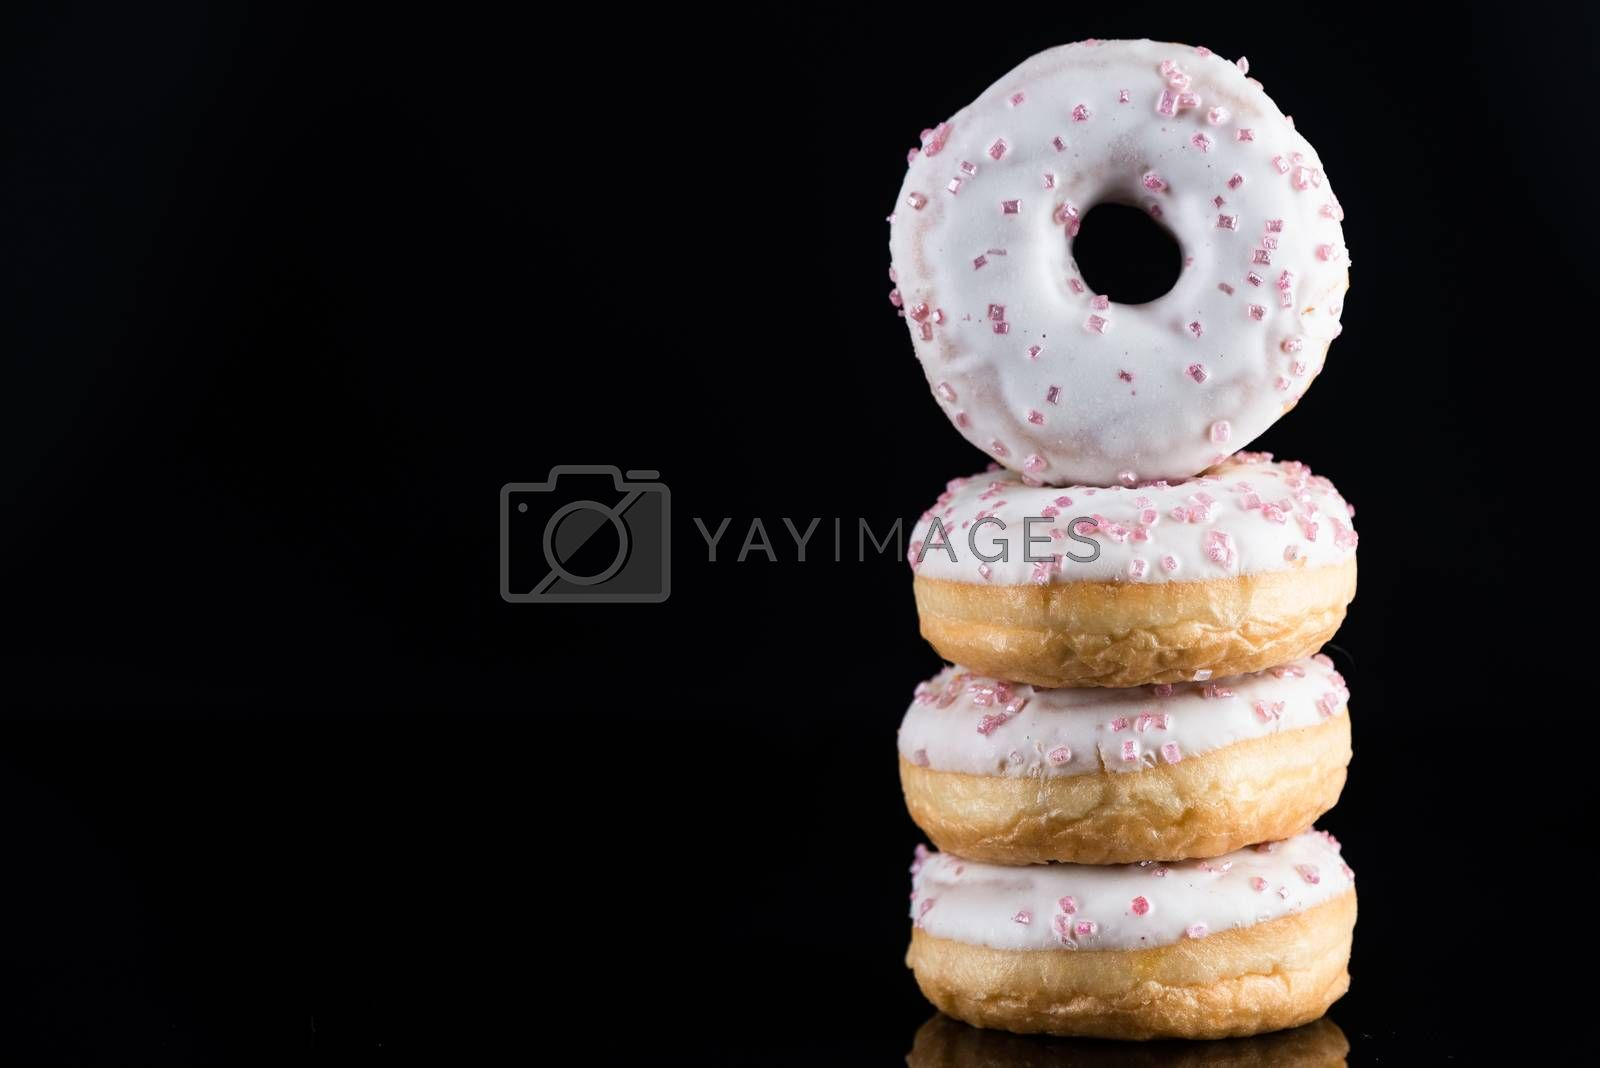 White Chocolate Donuts or Doughnuts Tower on Dark Background. Copy Space for Text.